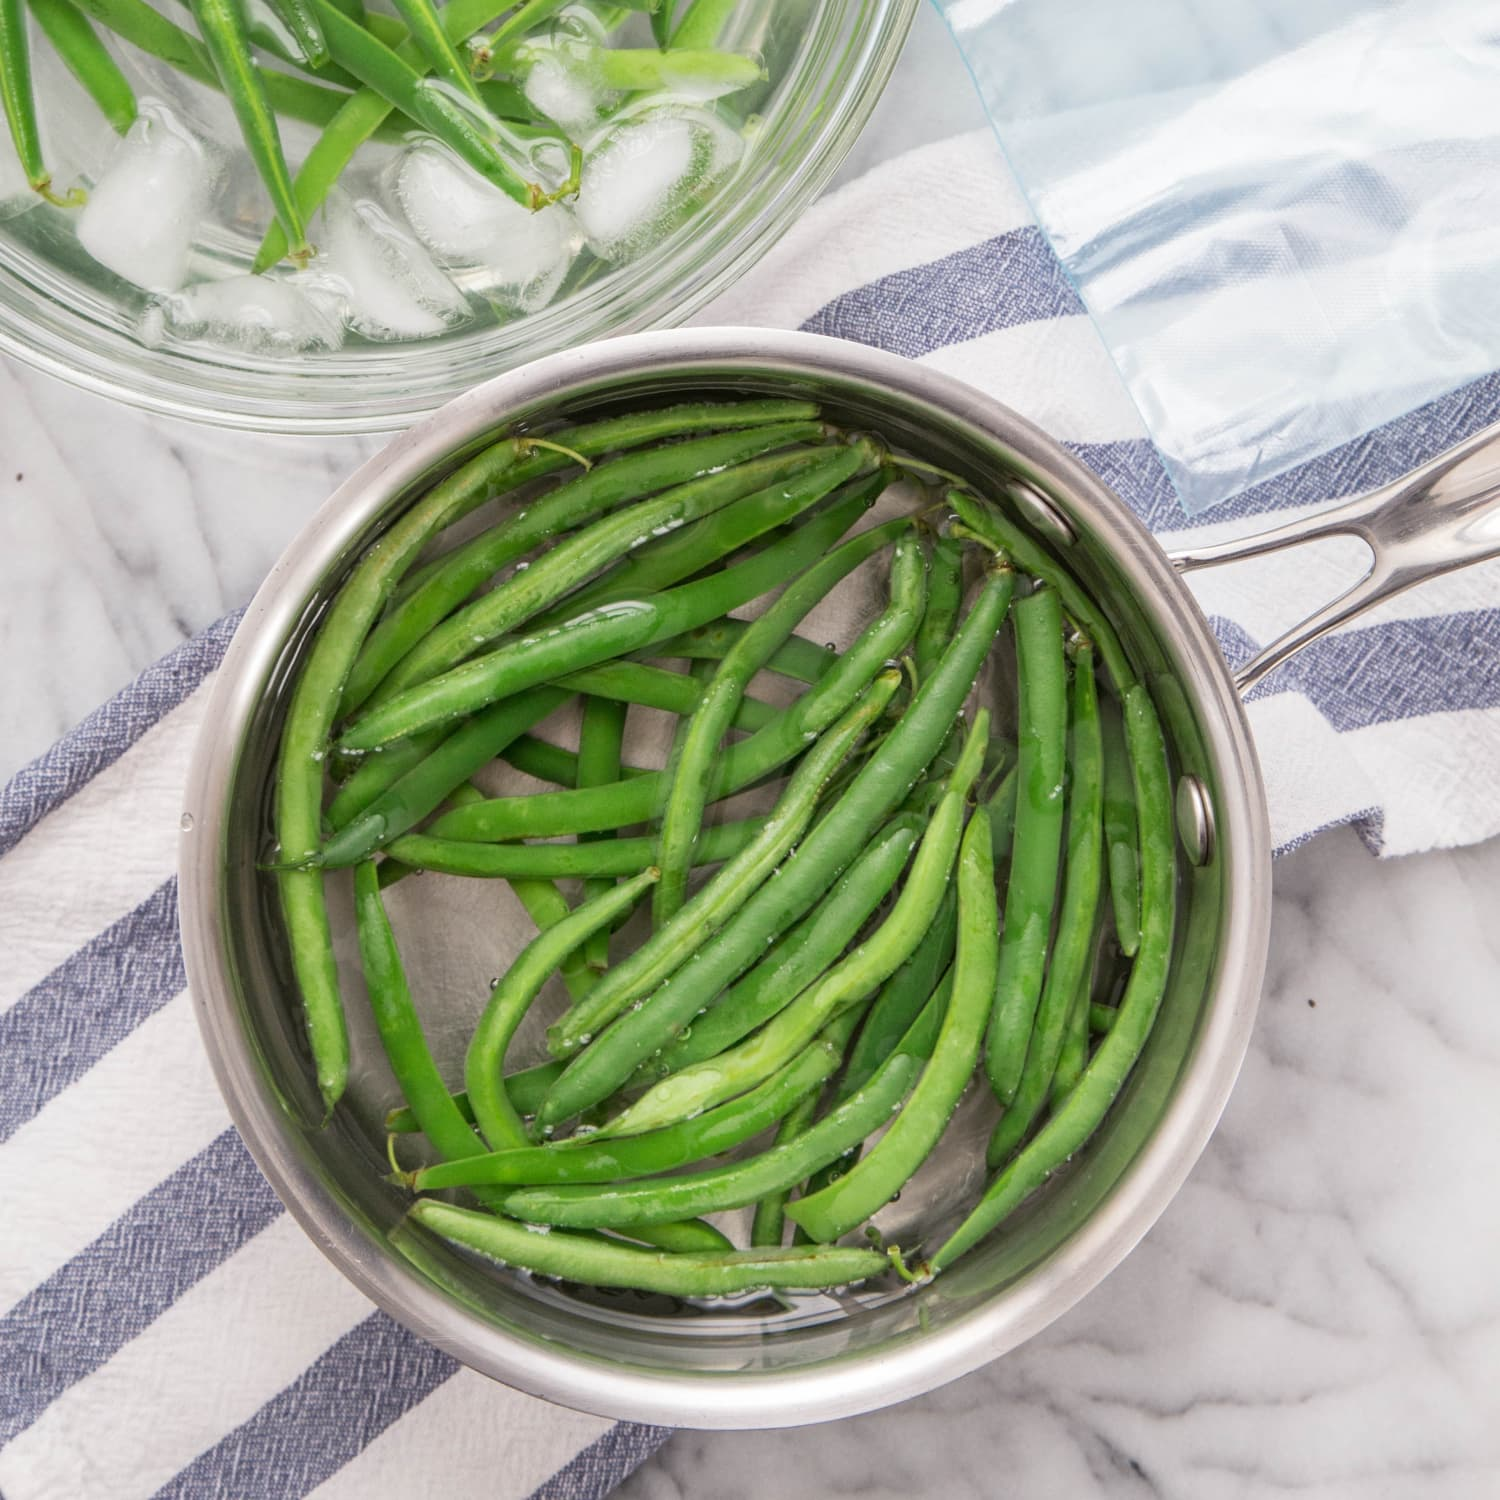 Why You Should Blanch Vegetables Before Freezing | Kitchn